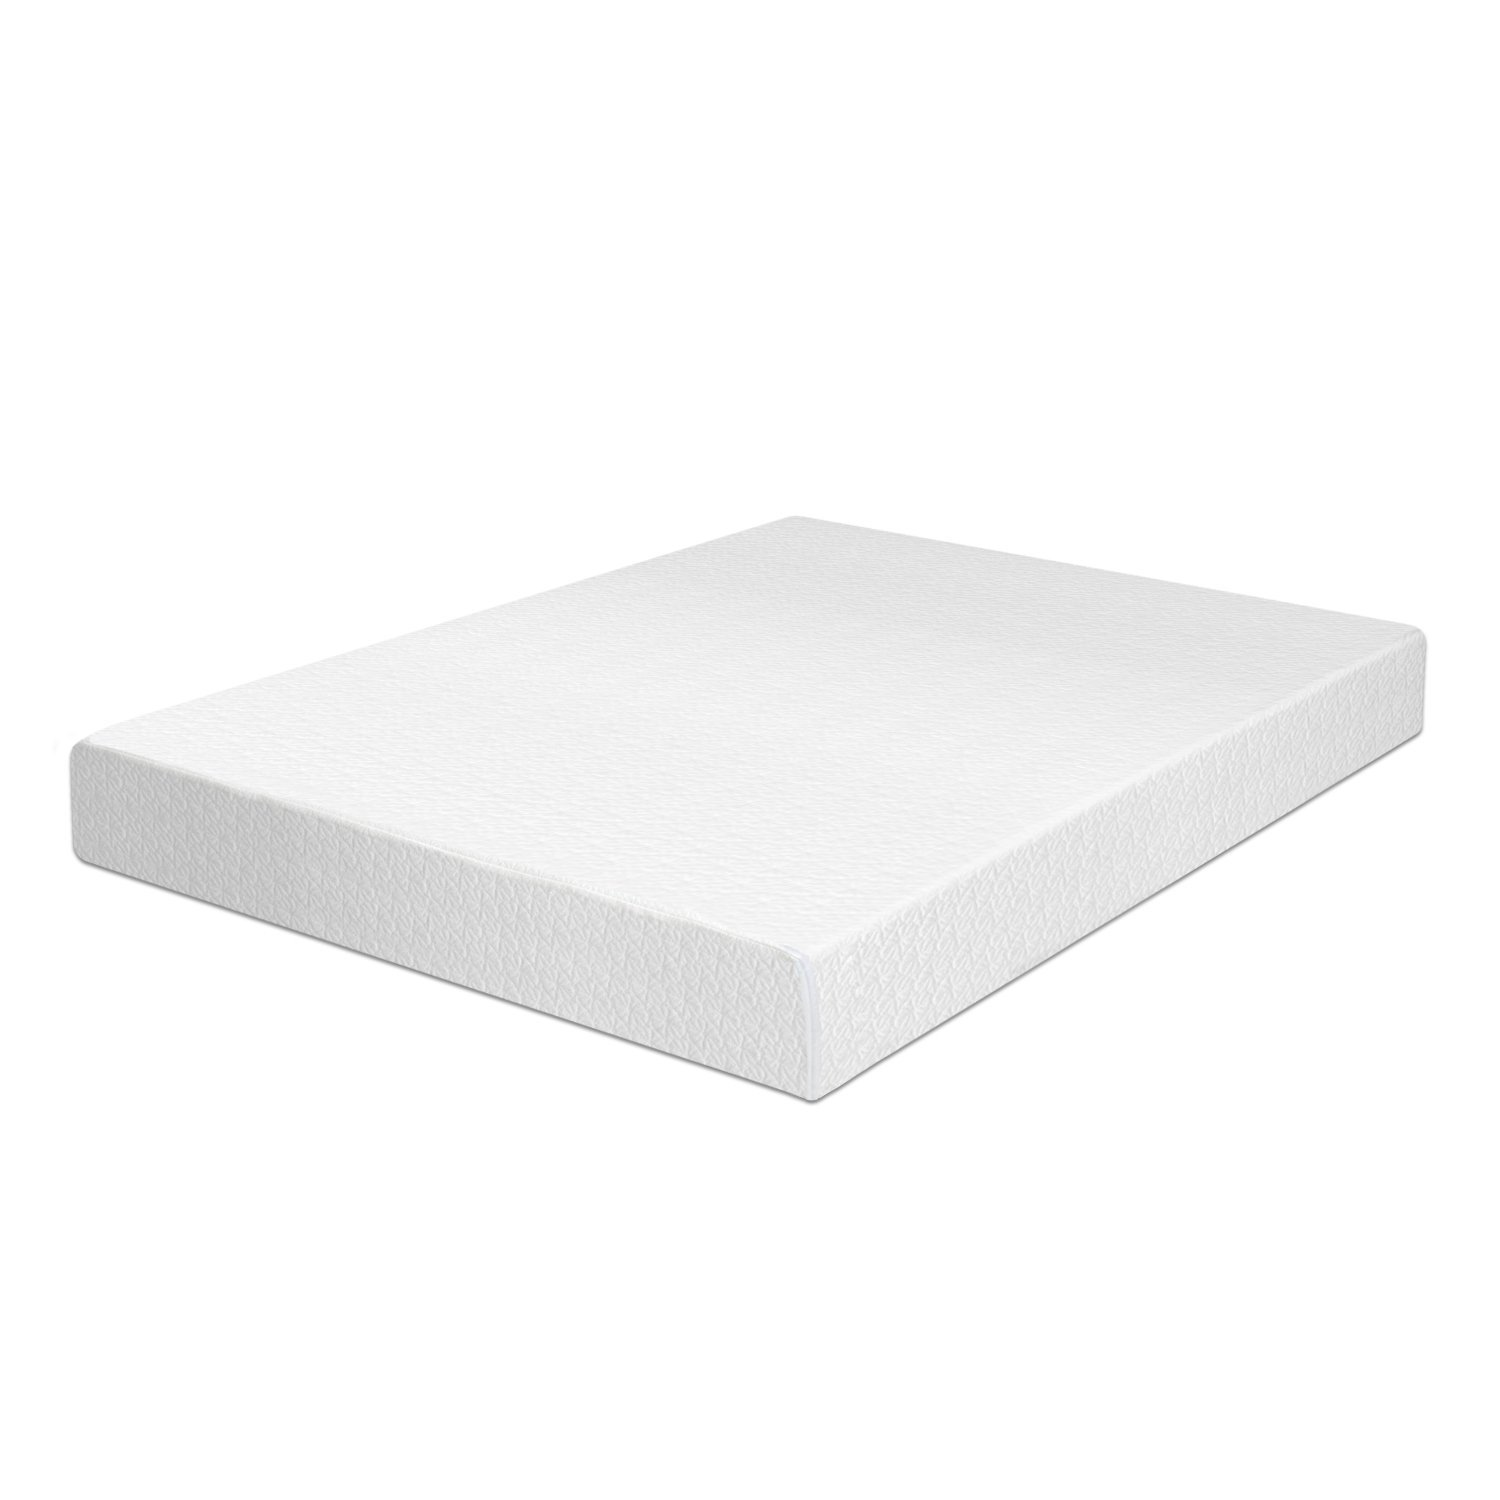 Best mattress 8 inch memory foam mattress queen review top 2 reviews product reviews by expert Top rated memory foam mattress